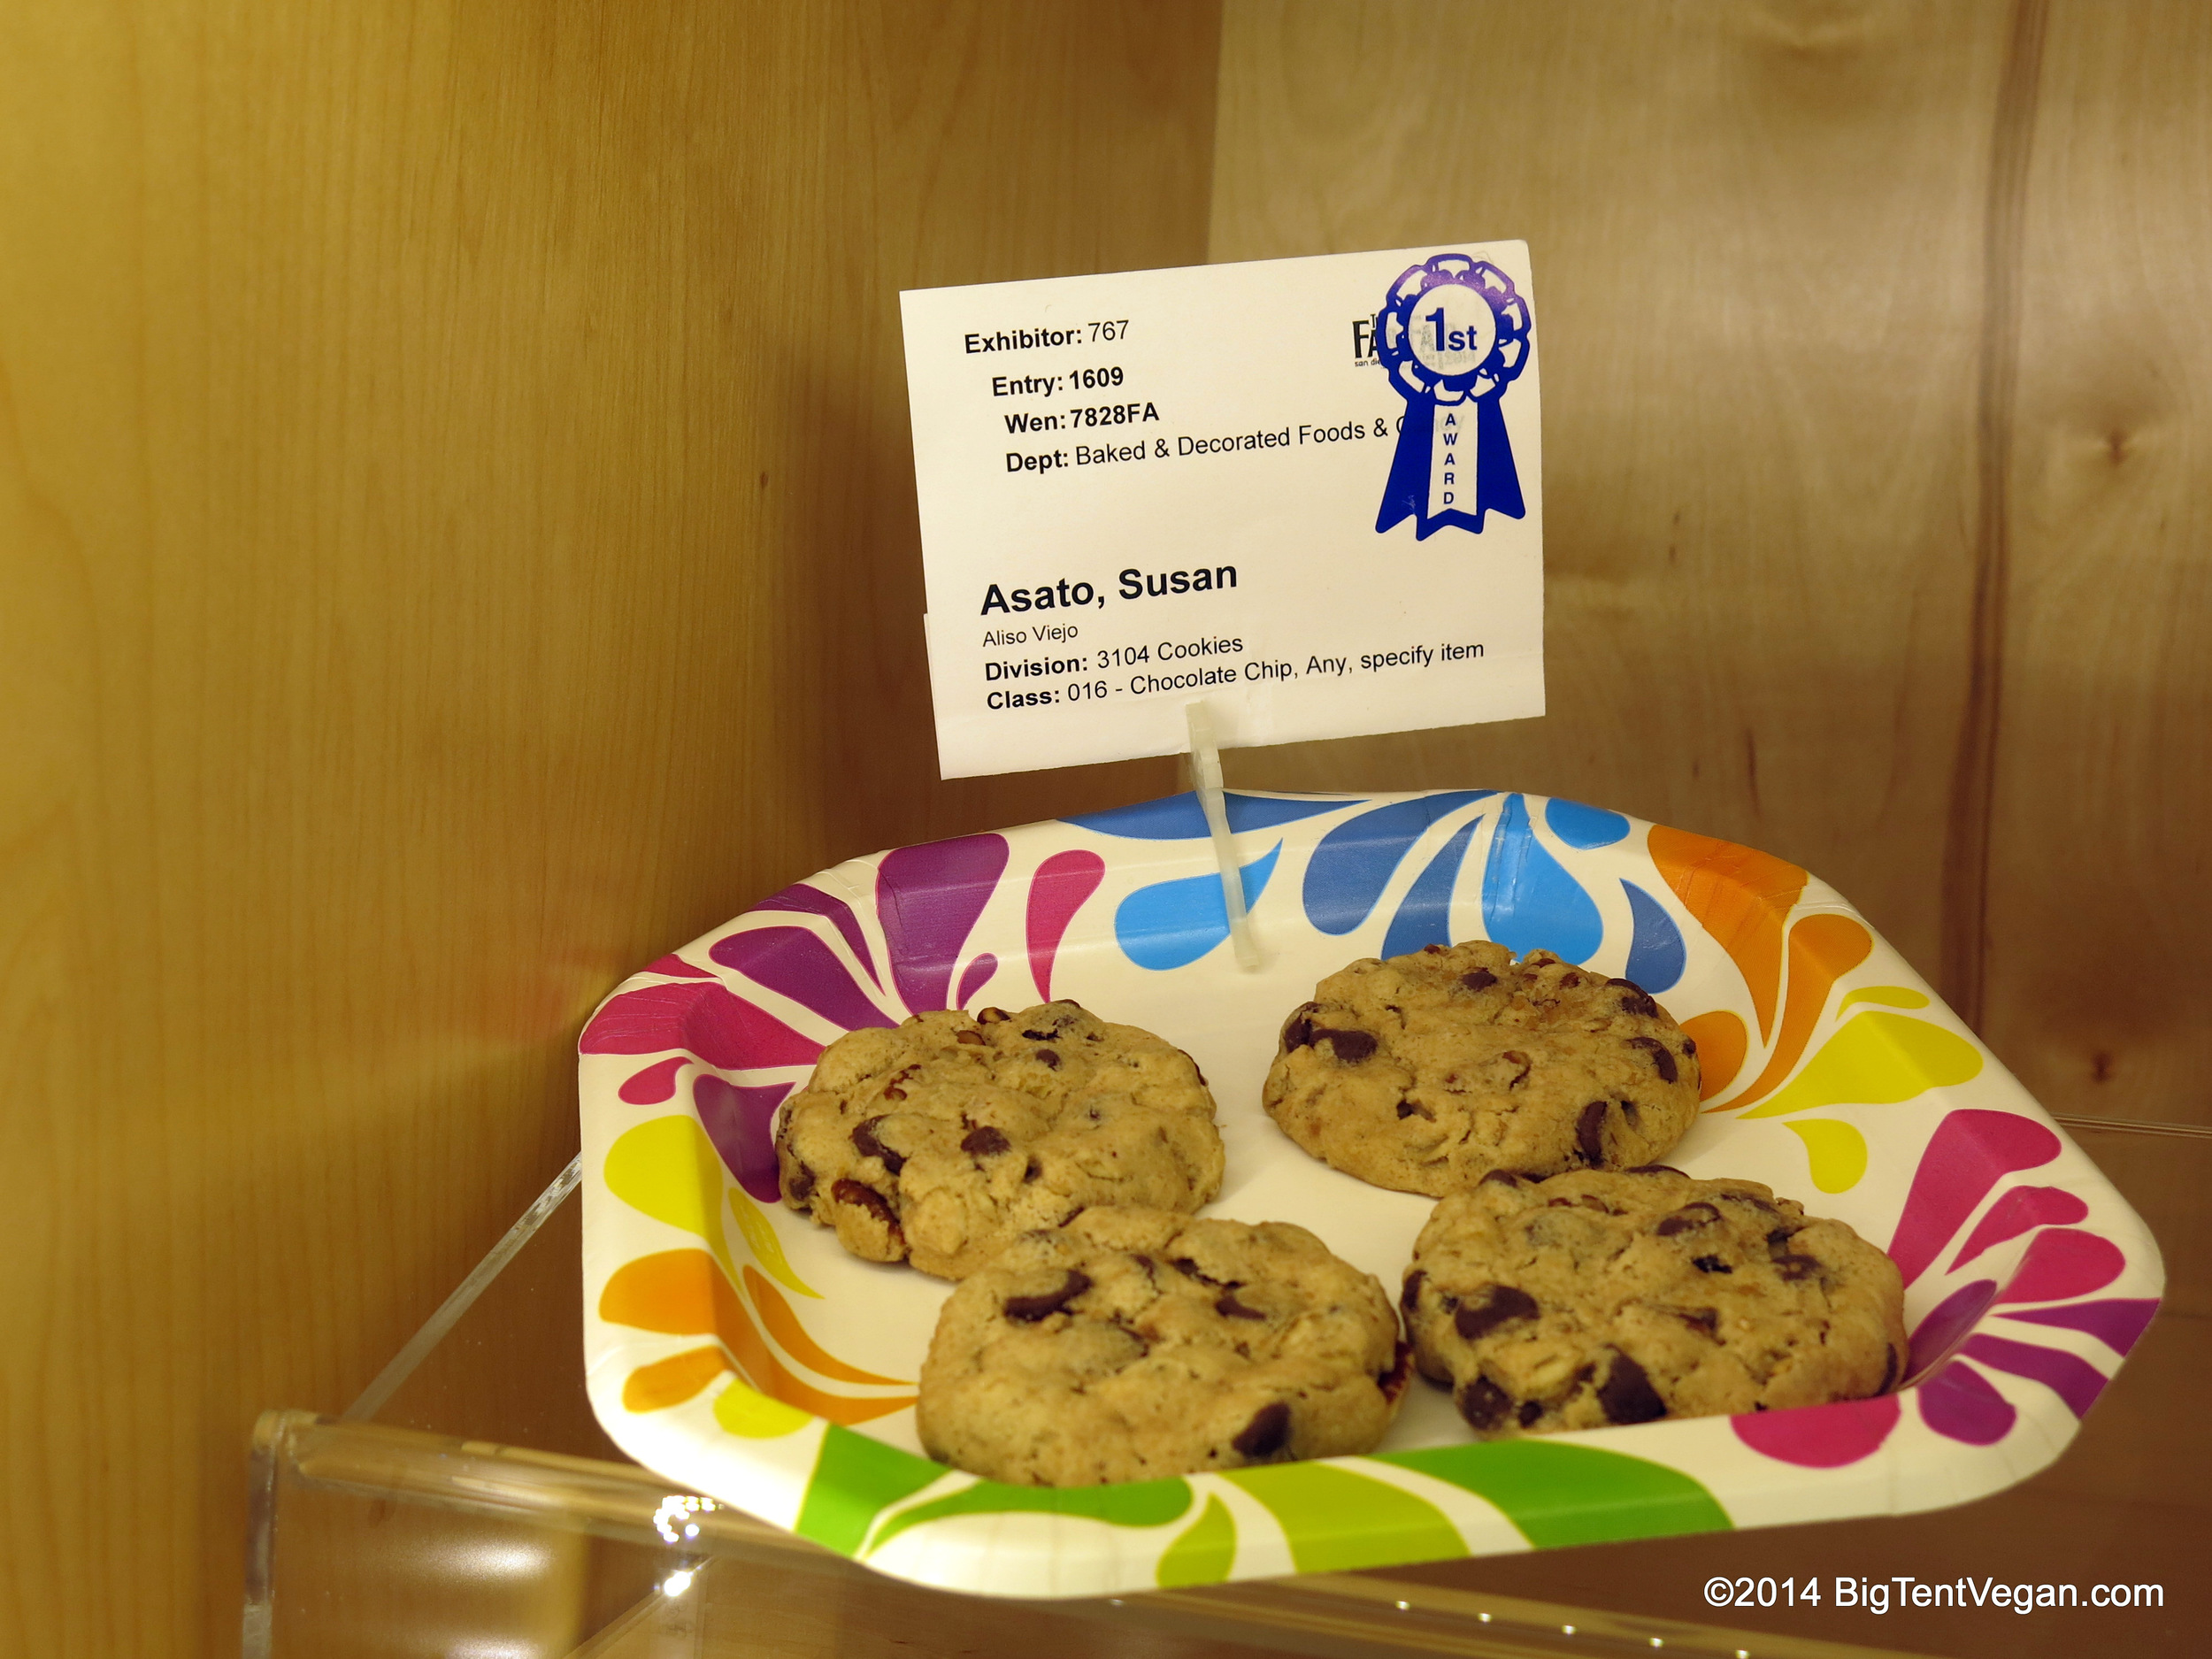 Vegan Chocolate Chip Cookies with Pecans. 1st Place, 2014 San Diego County Fair